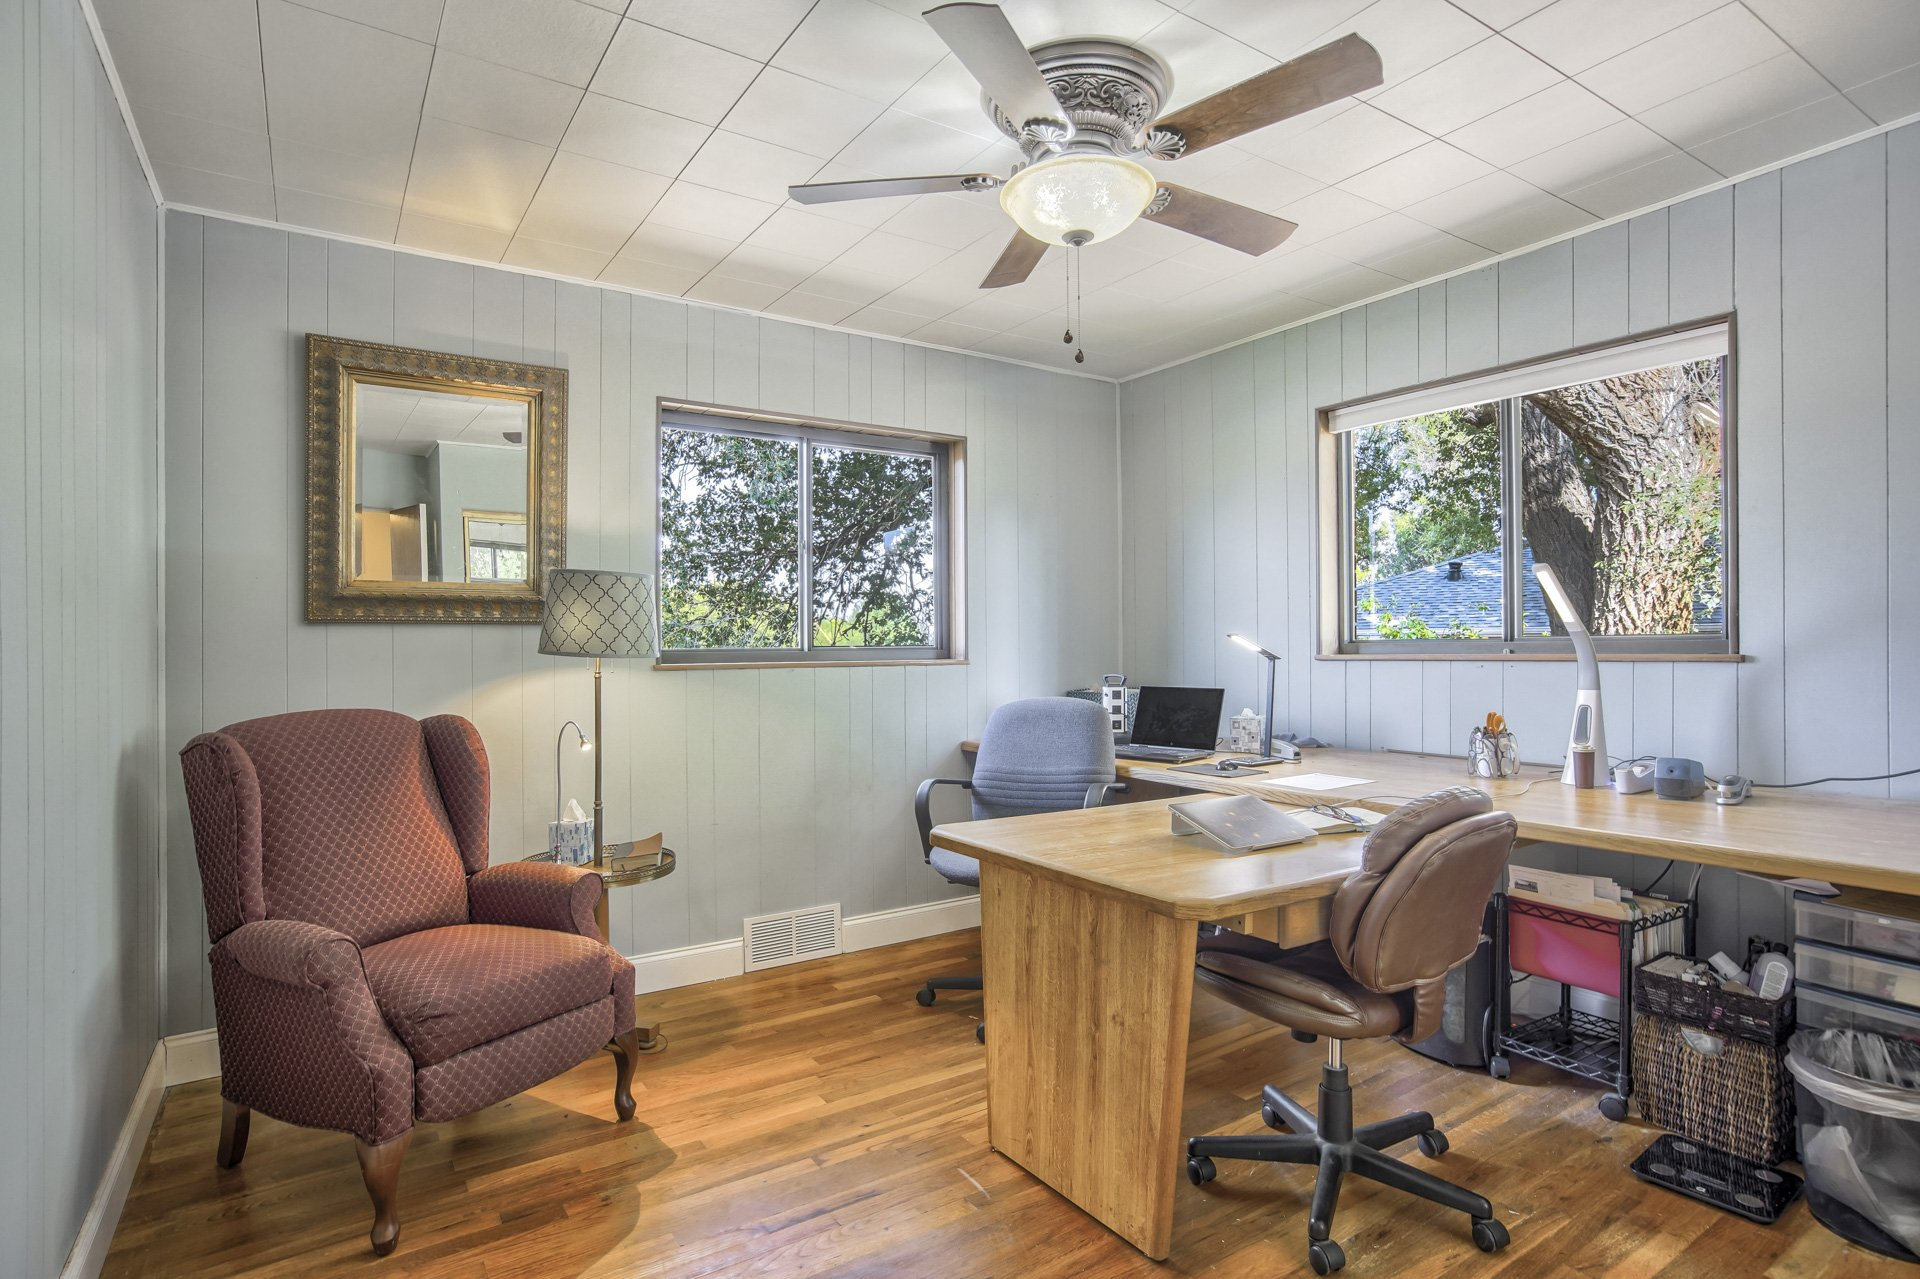 Desk and comfortable chair in office